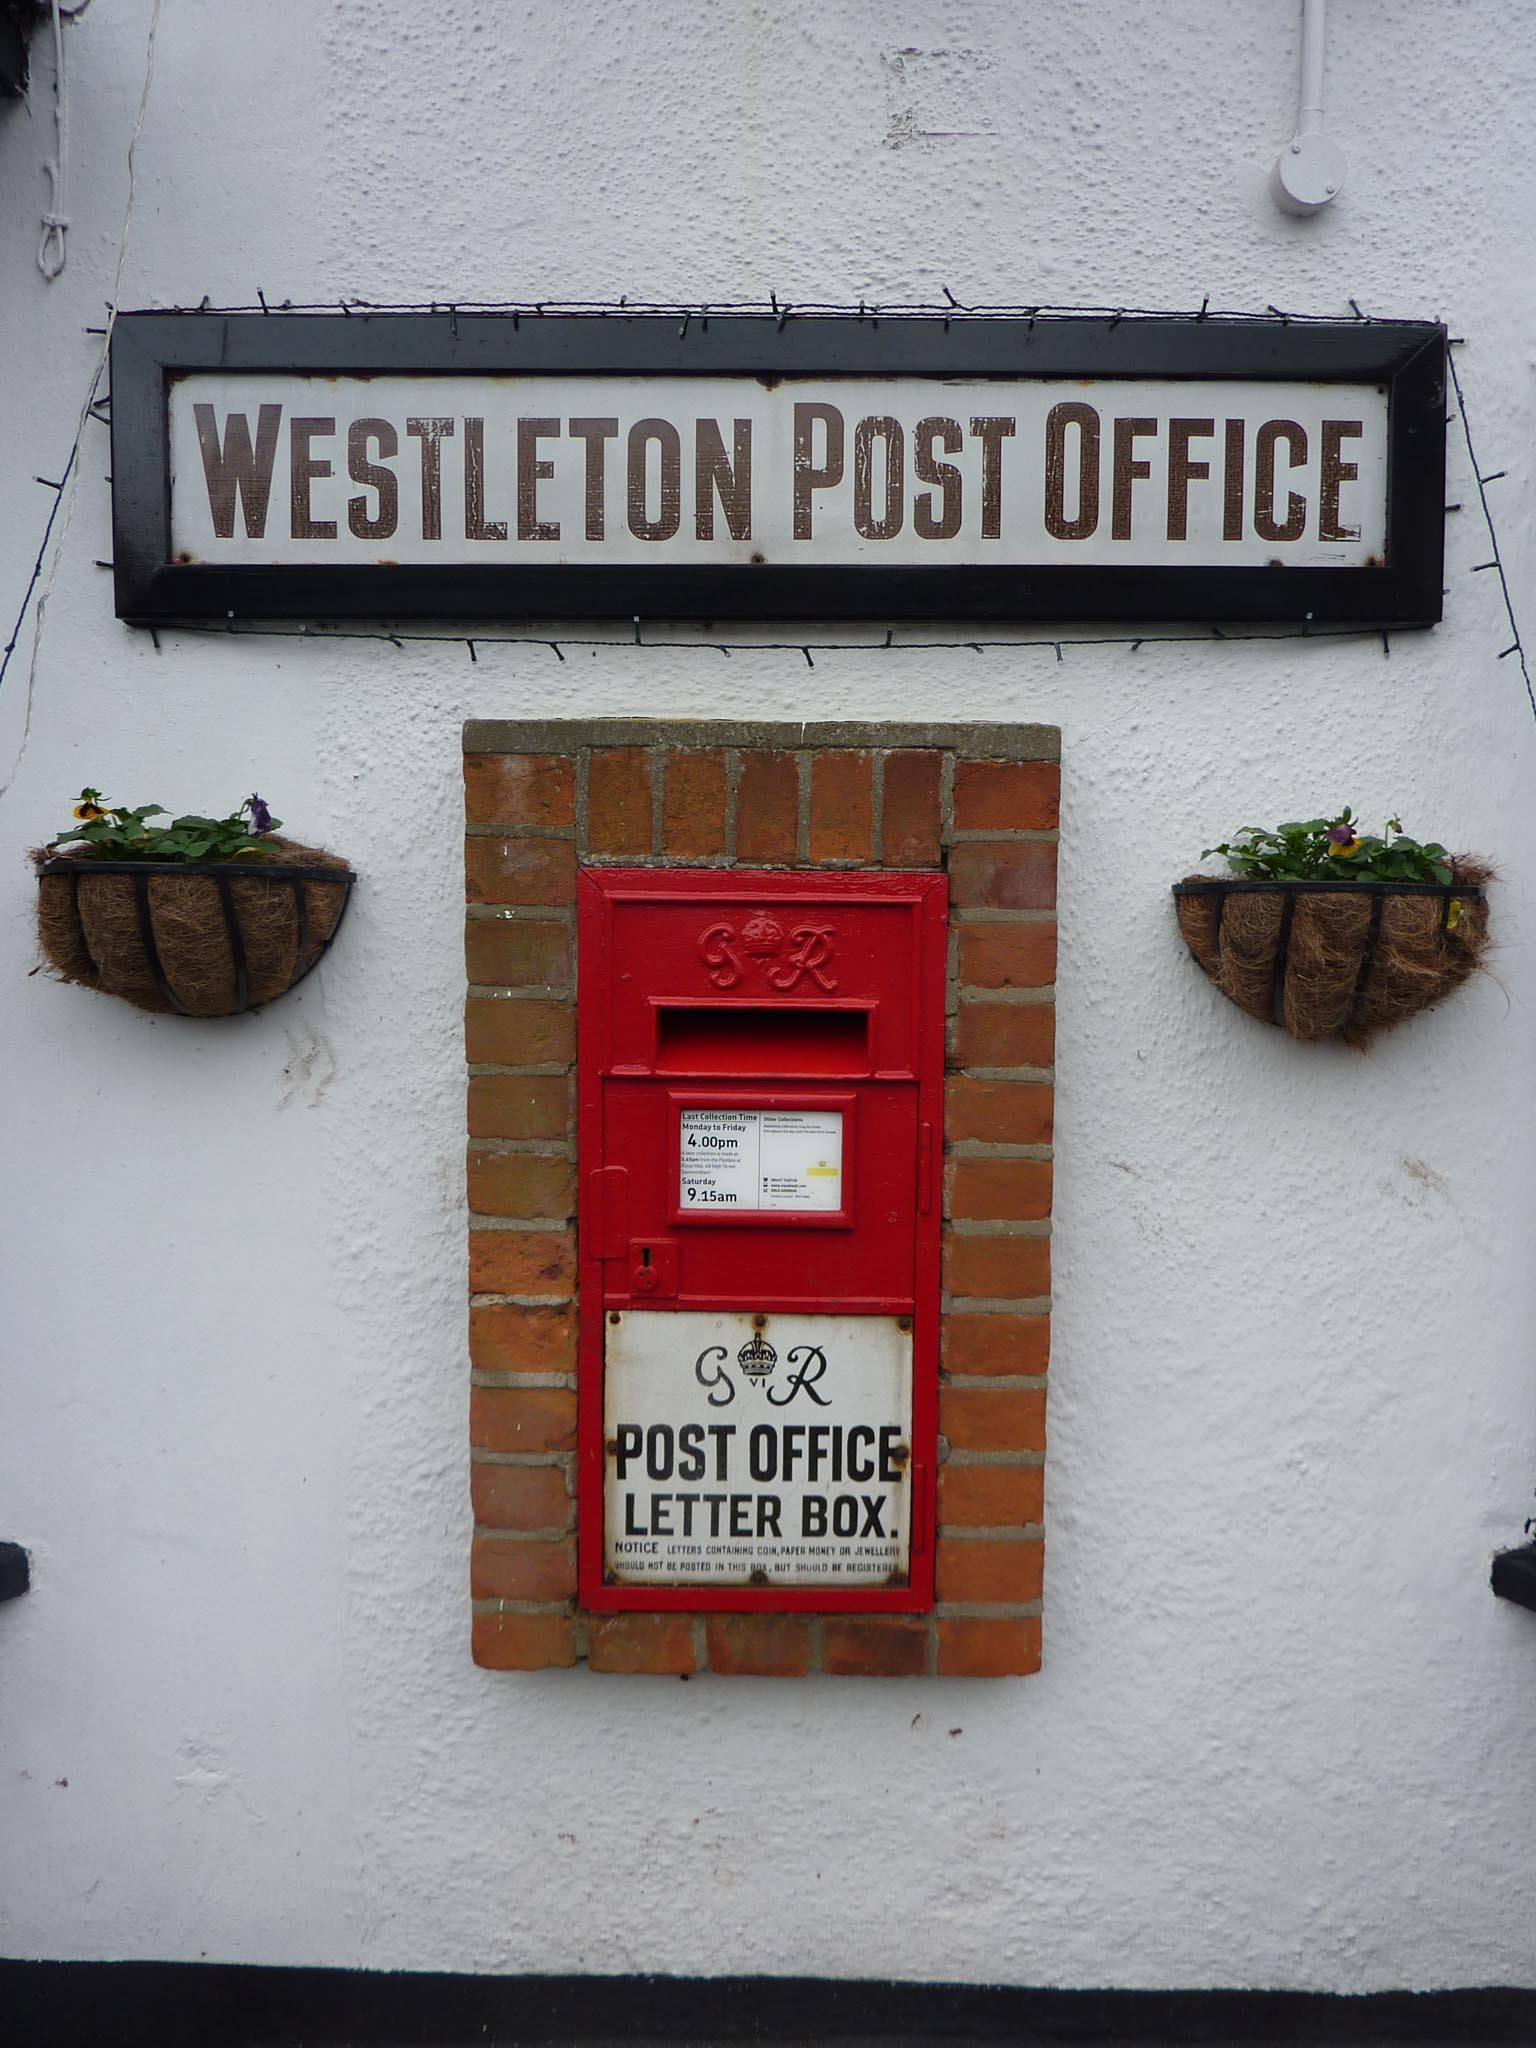 G6R Ludlow wall box, 1930s, Suffolk. Andrew R Young